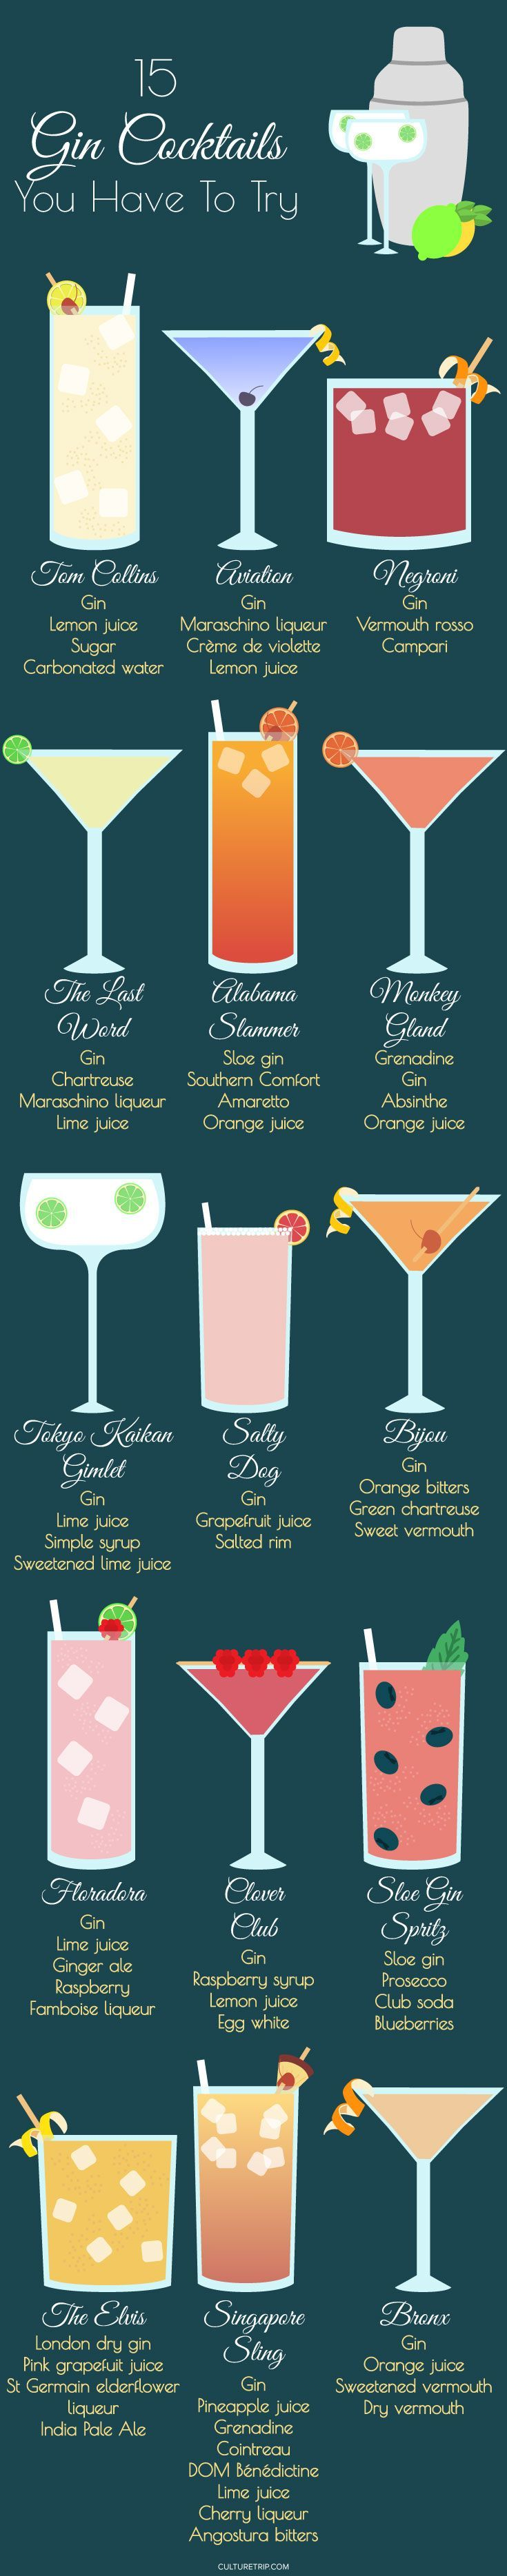 15 Incredible Cocktails to Make With Gin (Infographic)|Pinterest: @theculturetrip #SEOScore